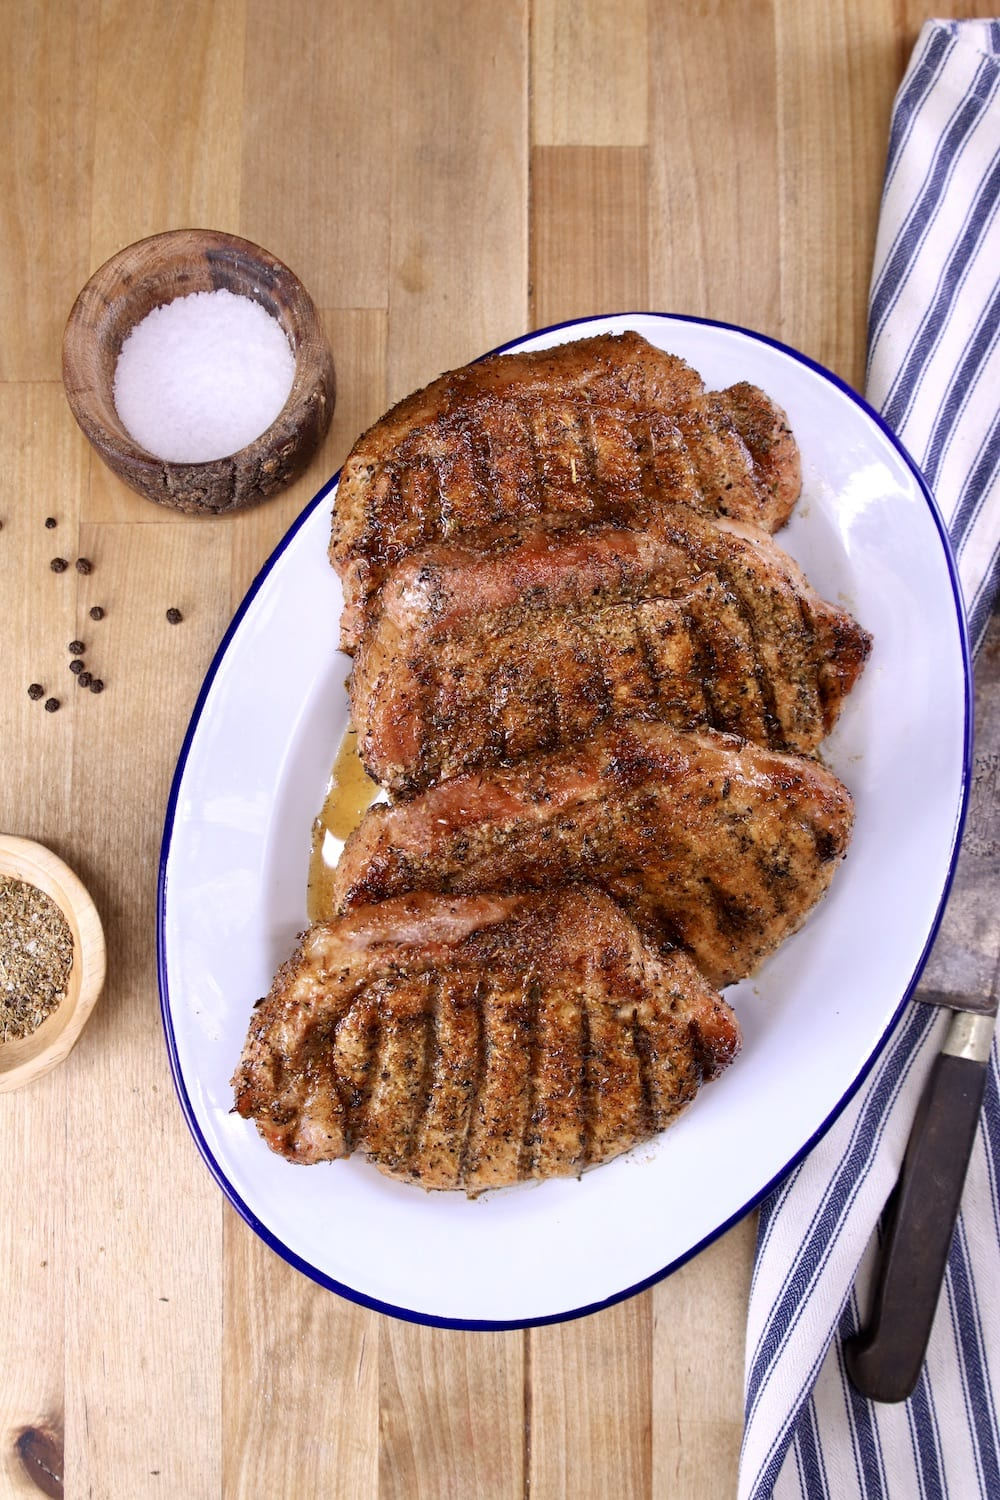 Grilled Pork Chops resting on a platter with bowl of salt